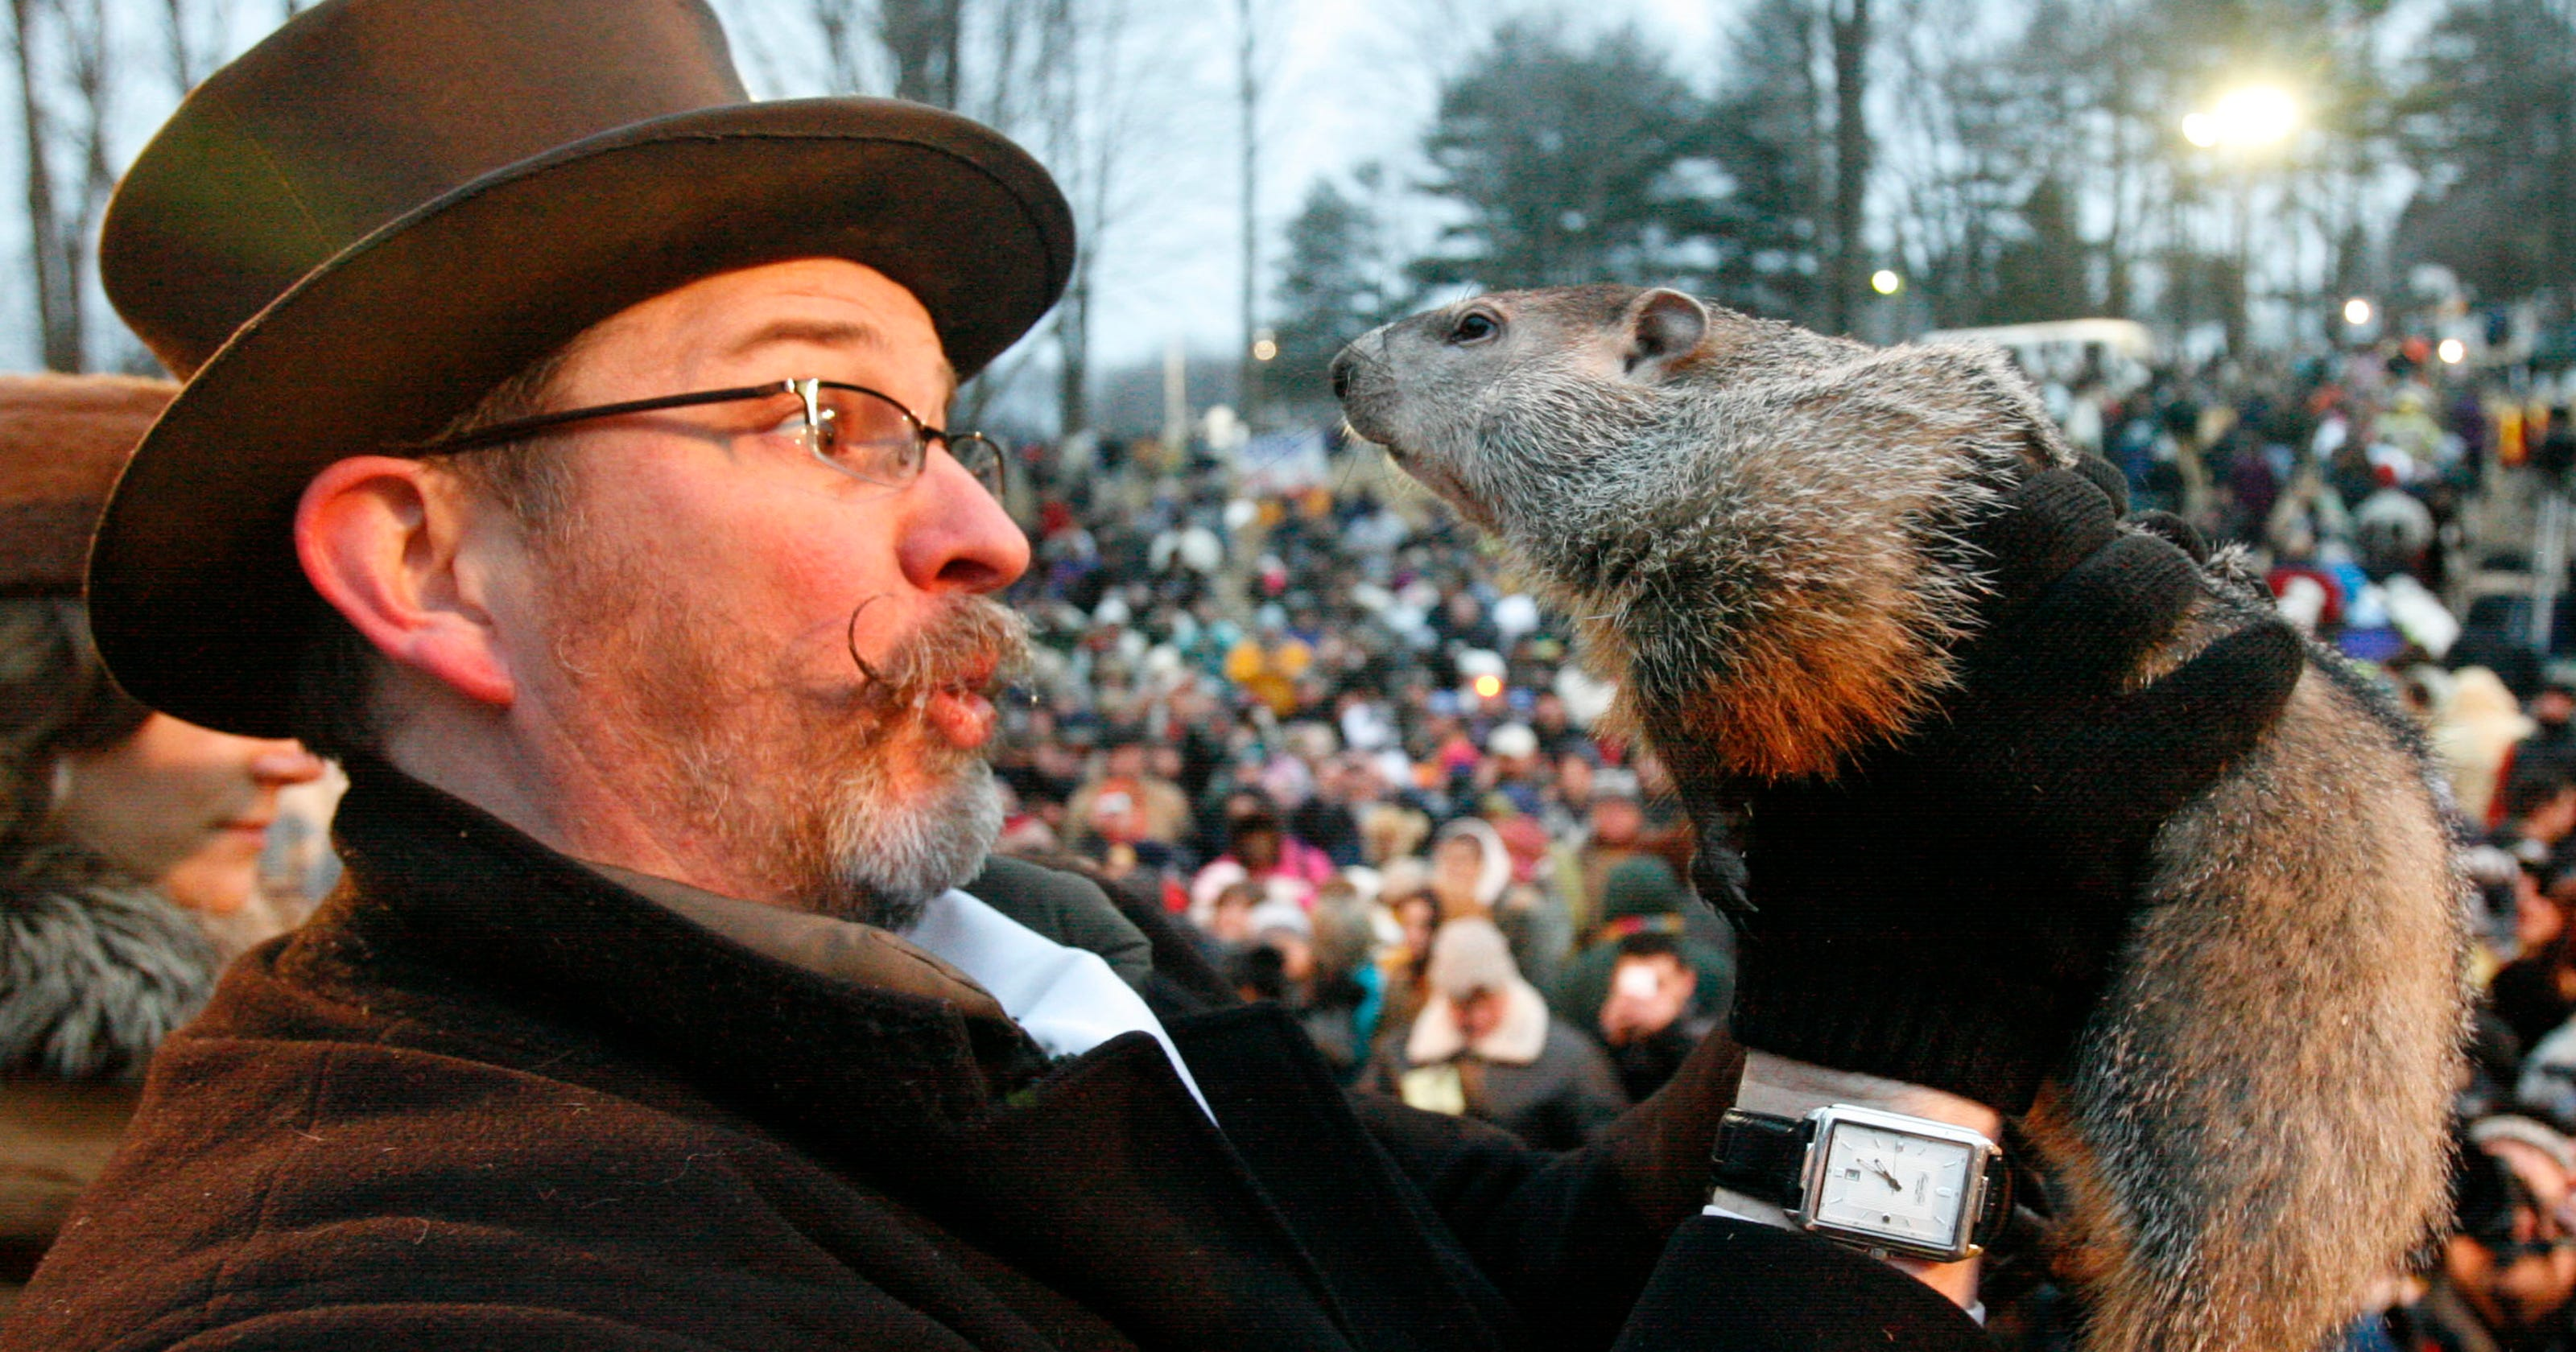 It's Groundhog Day! But how accurate is Punxsutawney Phil?